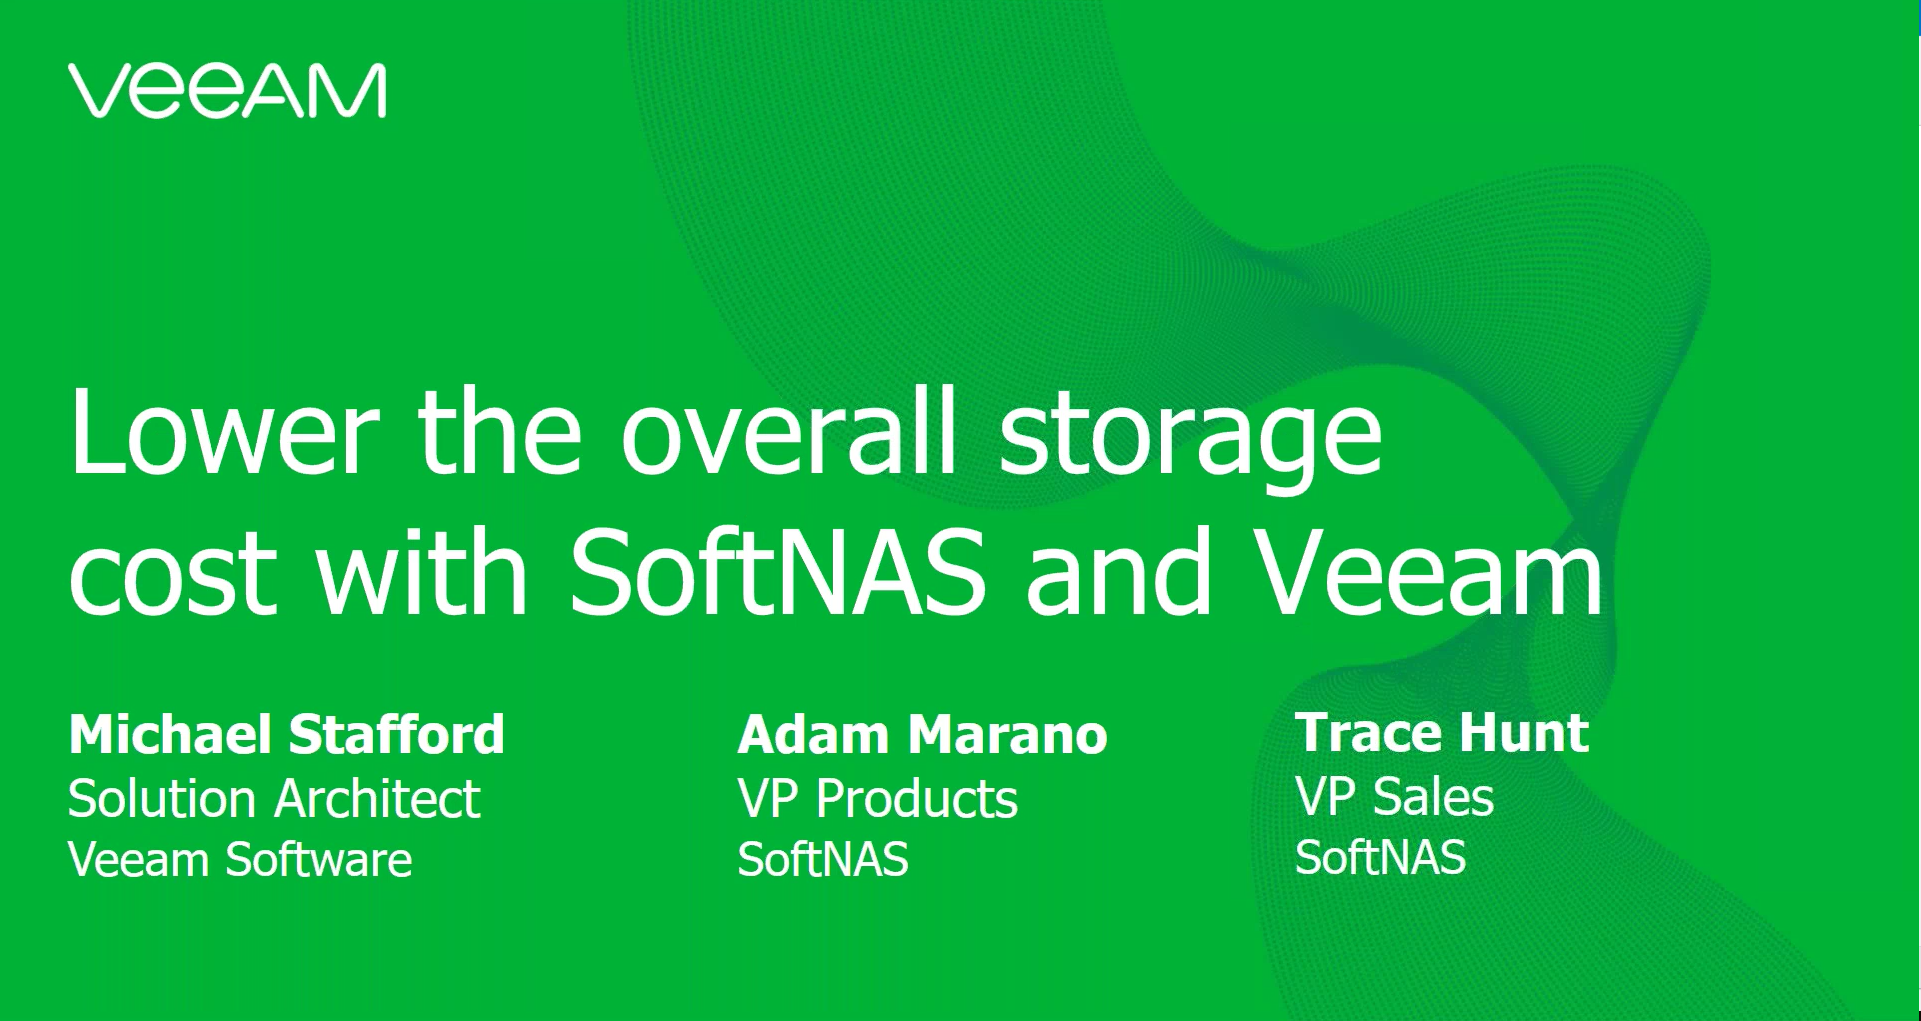 Lower the overall storage cost  with SoftNAS and Veeam